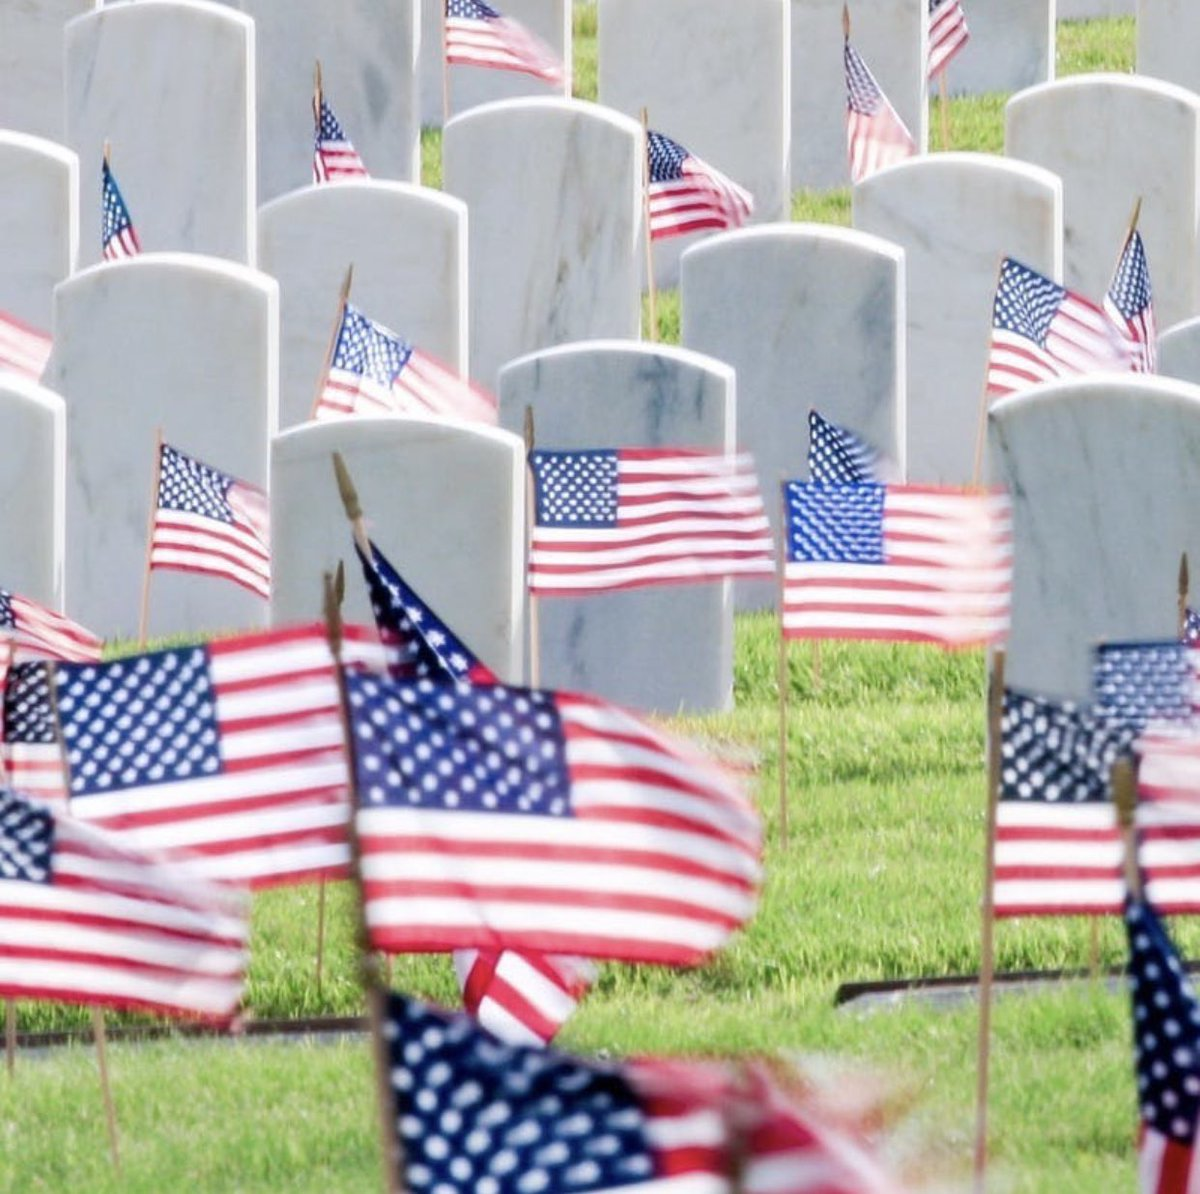 God bless our fallen heroes. 🇺🇸 God bless the families of the men and women who have sacrificed their lives for our freedom. 🇺🇸 God bless all who have served. 🇺🇸 God bless America. 🇺🇸 #MemorialDay